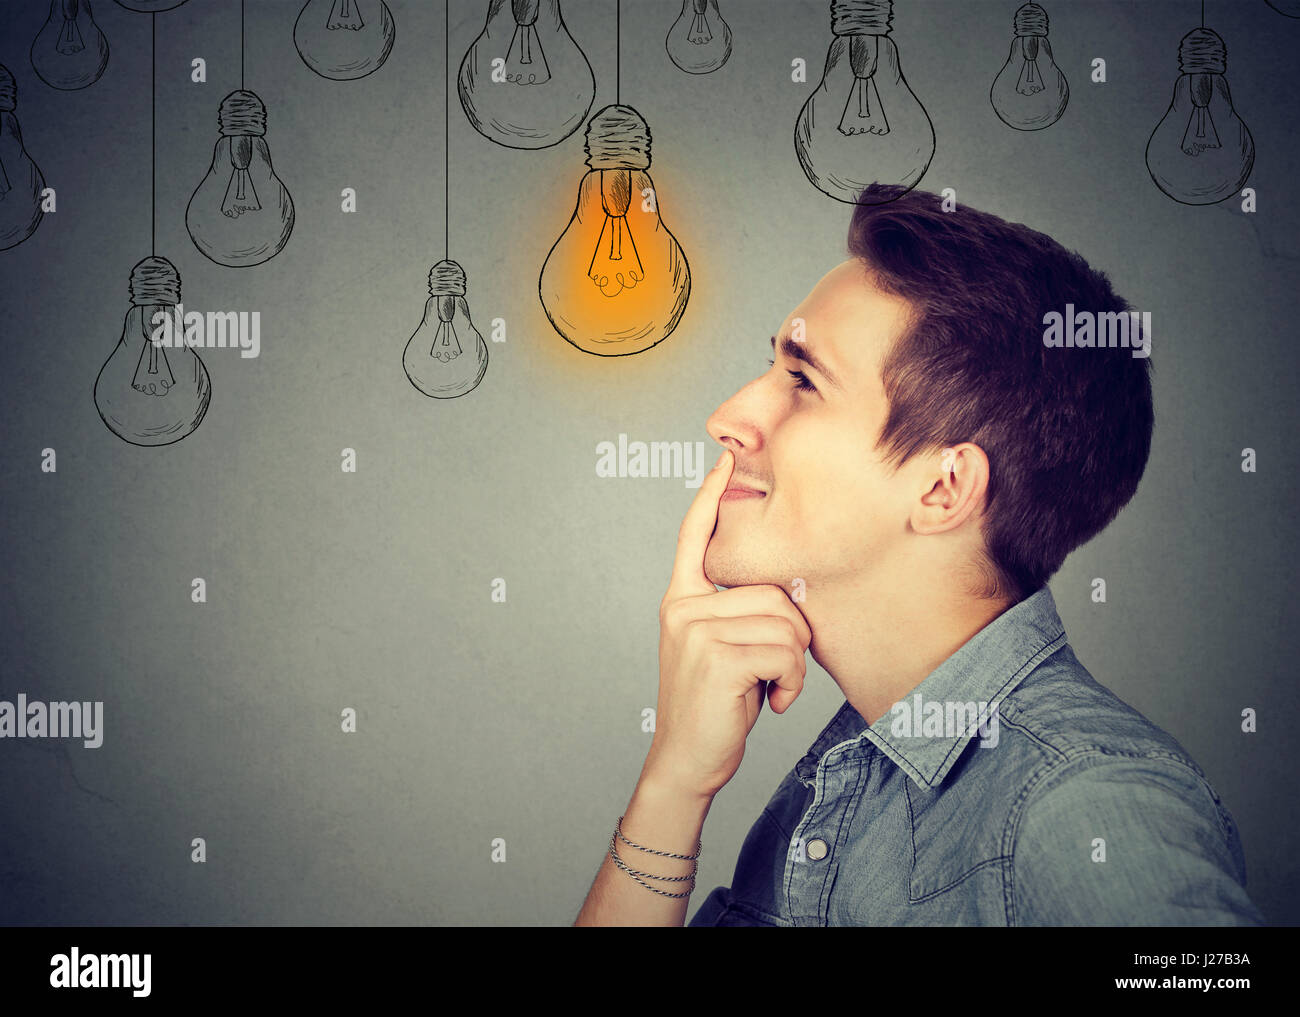 Thinking man looking up with light idea bulb above head isolated on gray wall background - Stock Image